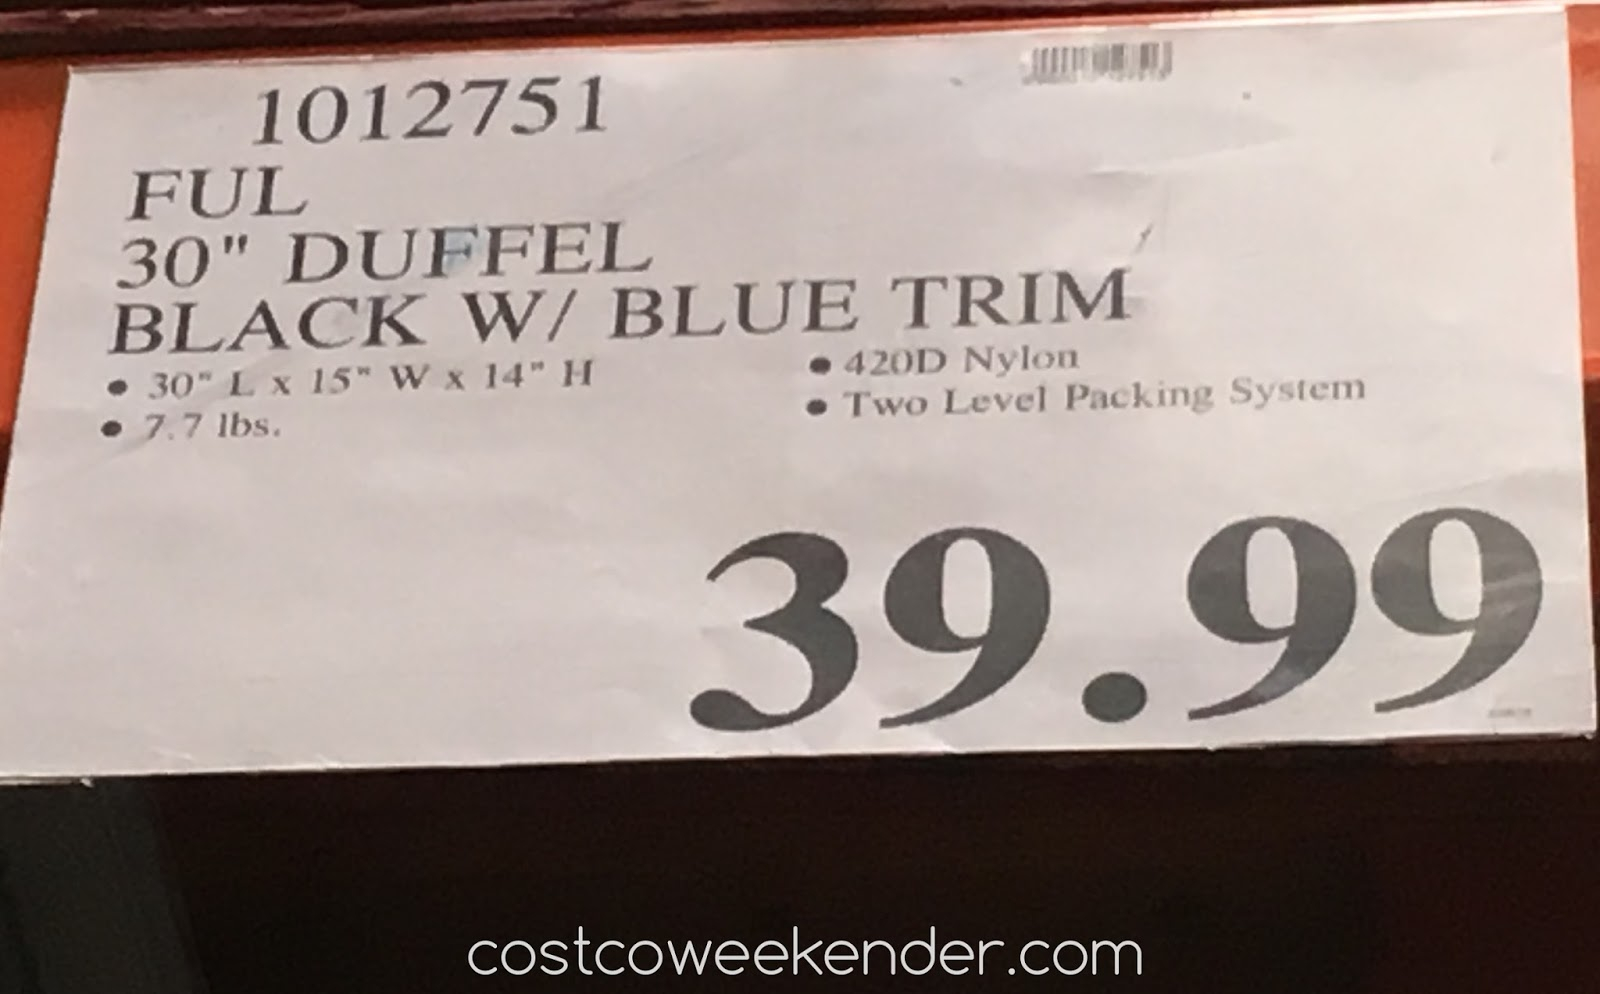 Deal For The Ful Split Level Rolling Duffel Bag At Costco